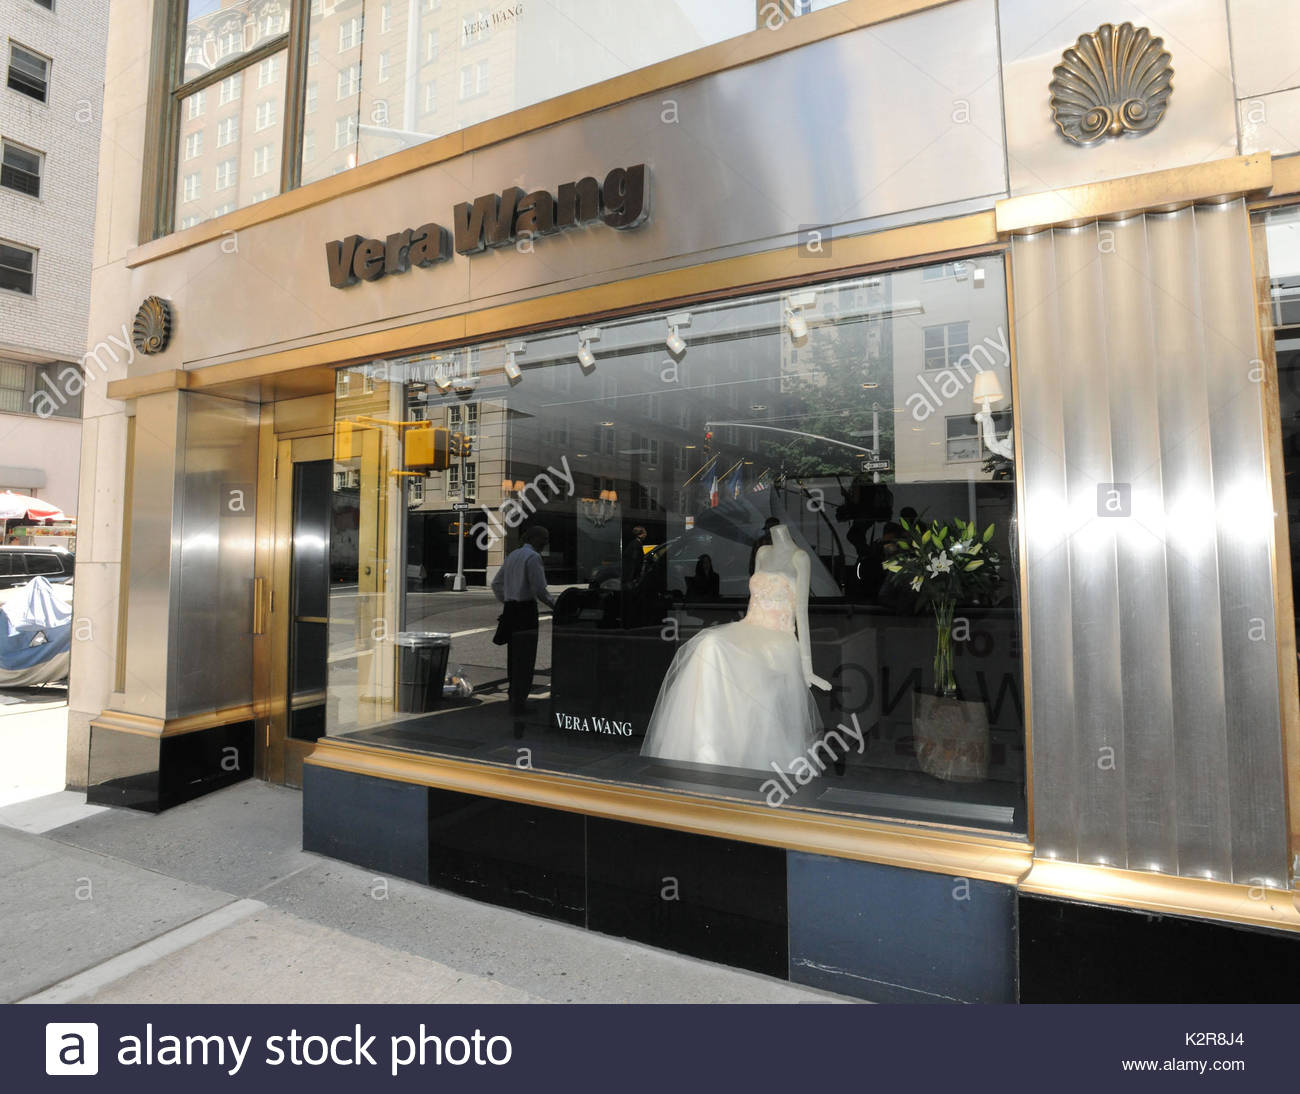 Vera wang store kim kardashian shops for vera wang for Wedding dress boutiques in nyc